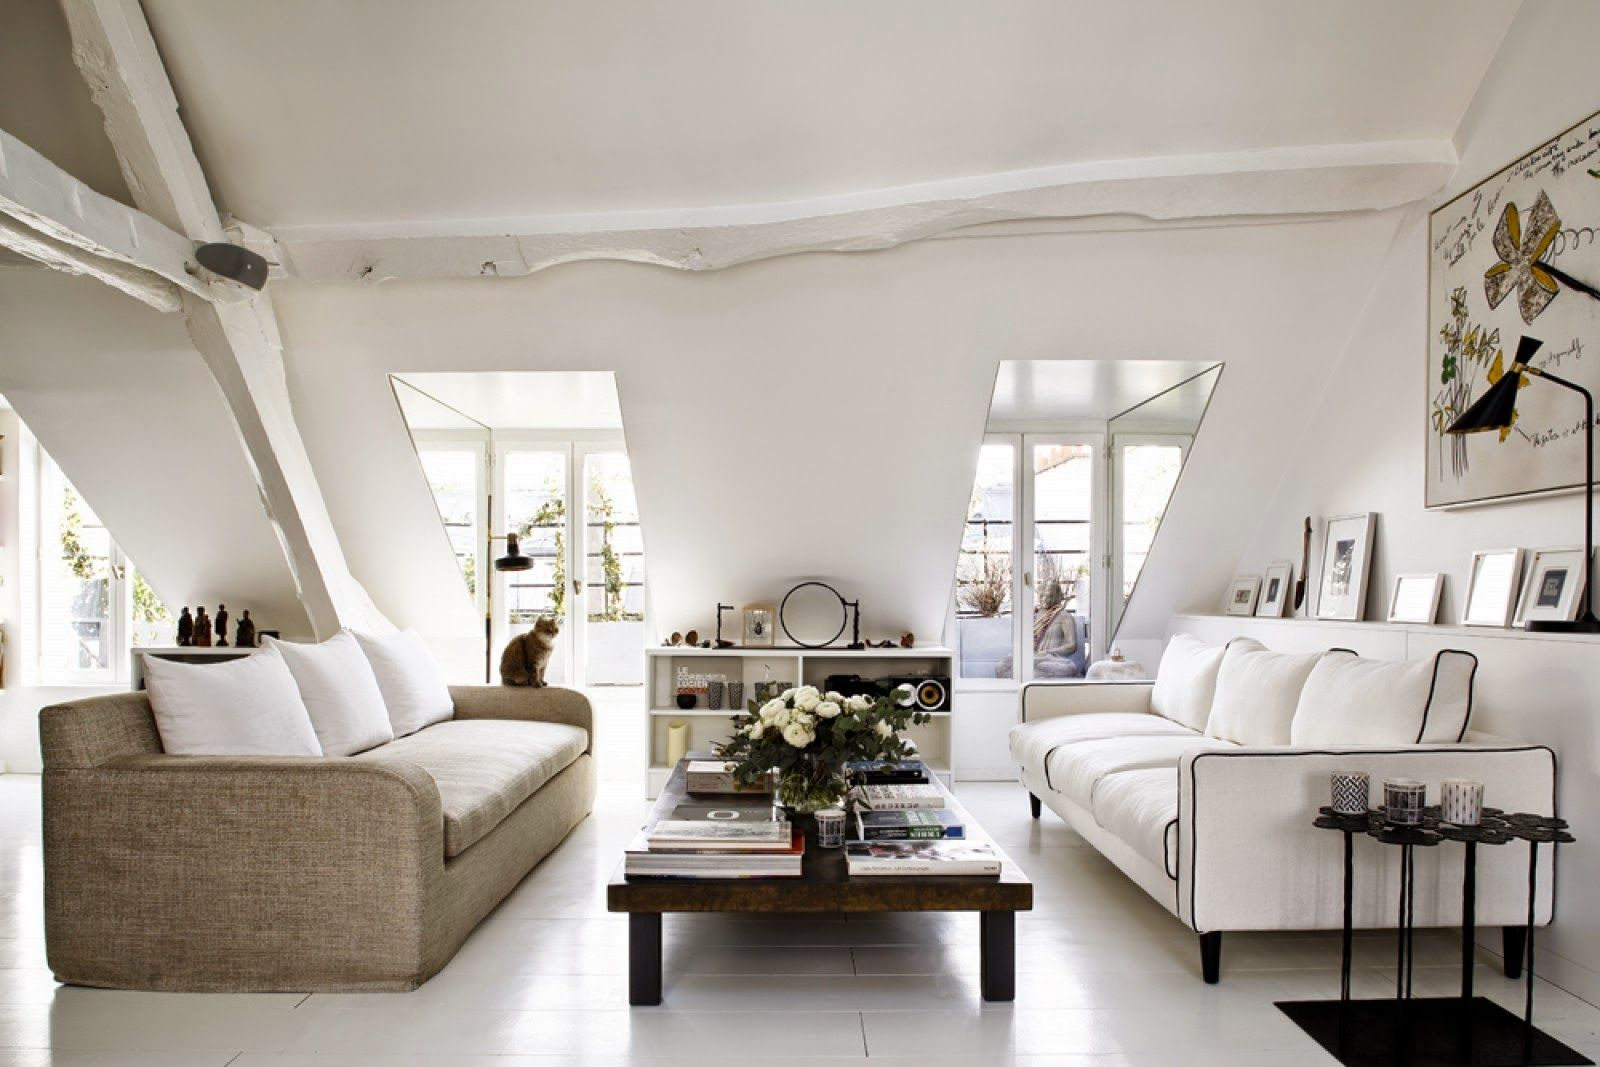 WELL STYLED ATTIC APARTMENT | Attic, Apartments and Living rooms